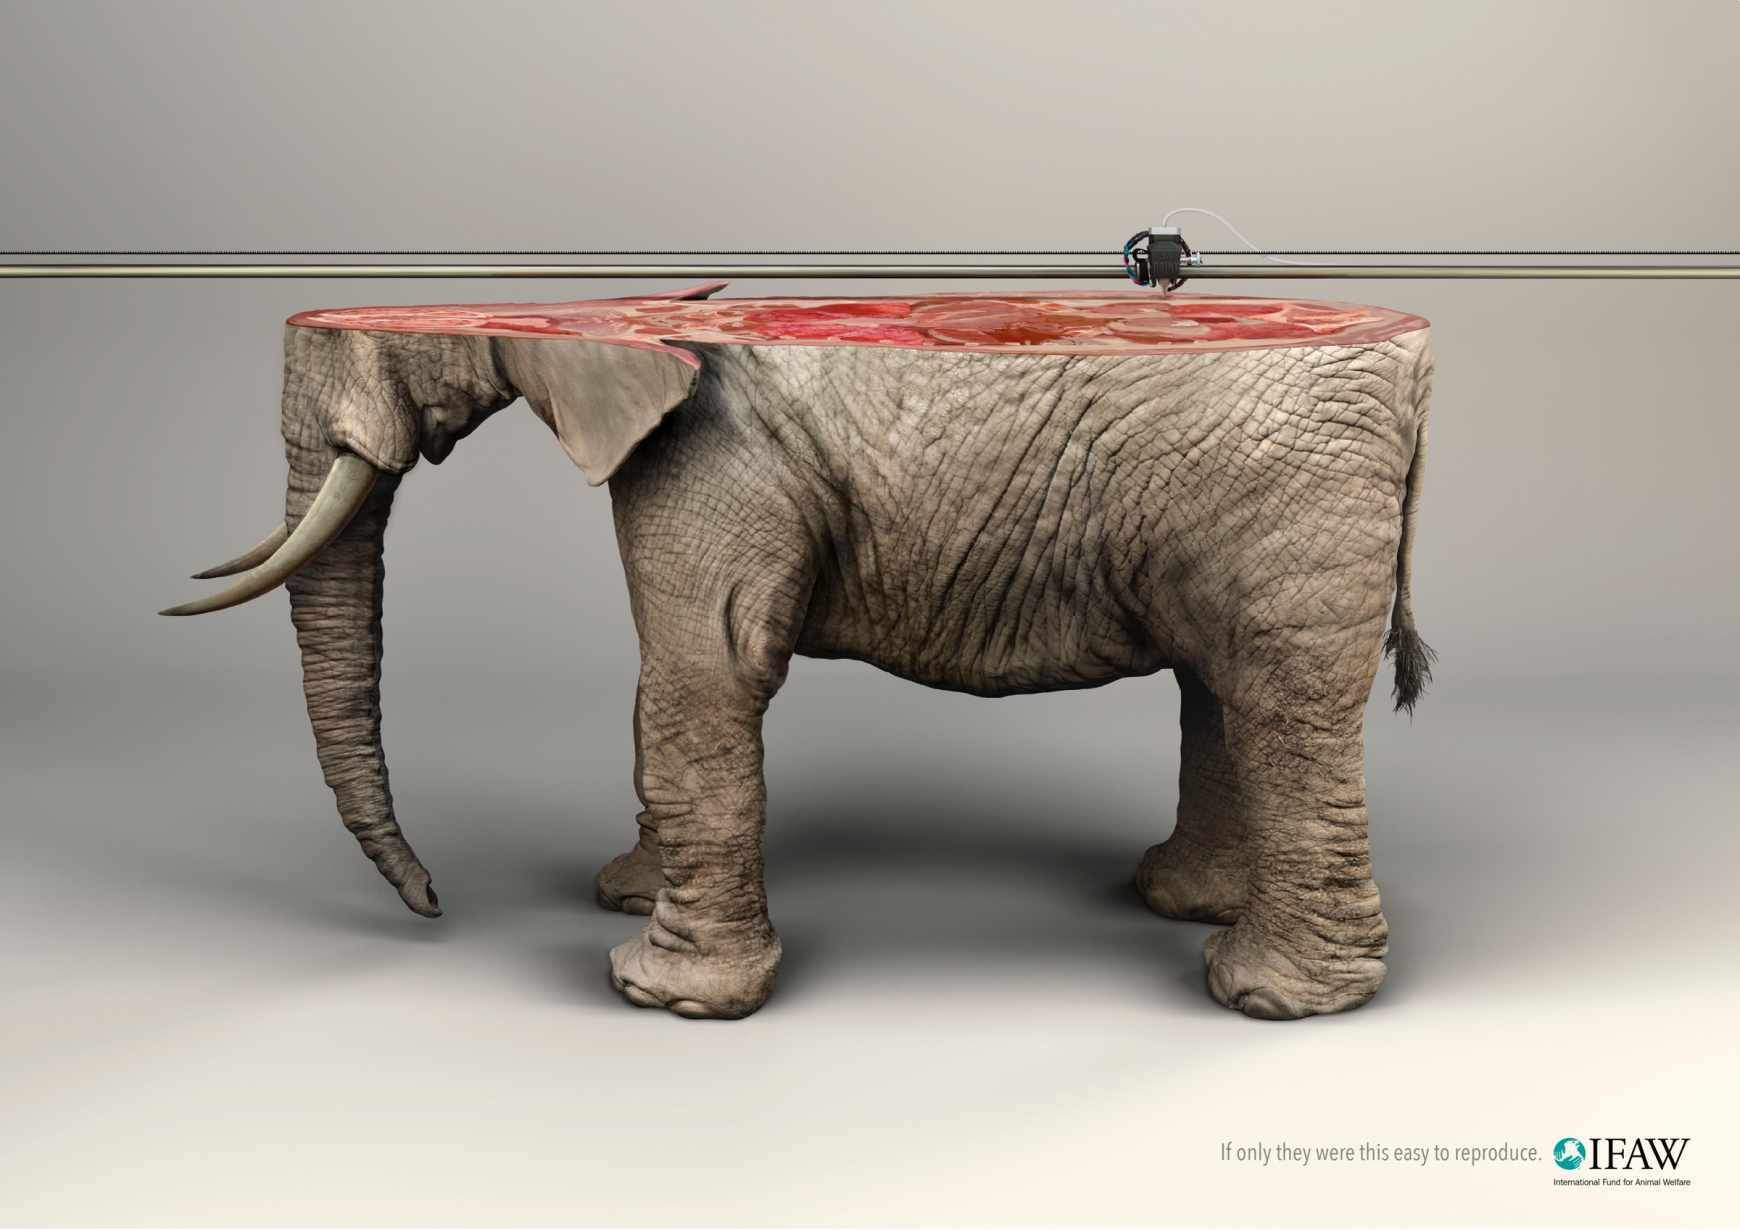 -Elephant-  #Photoshop #Creativity  Controversial #PrintAd Campaign www.photoshophobby.com/international-fund-for-animal-welfare/